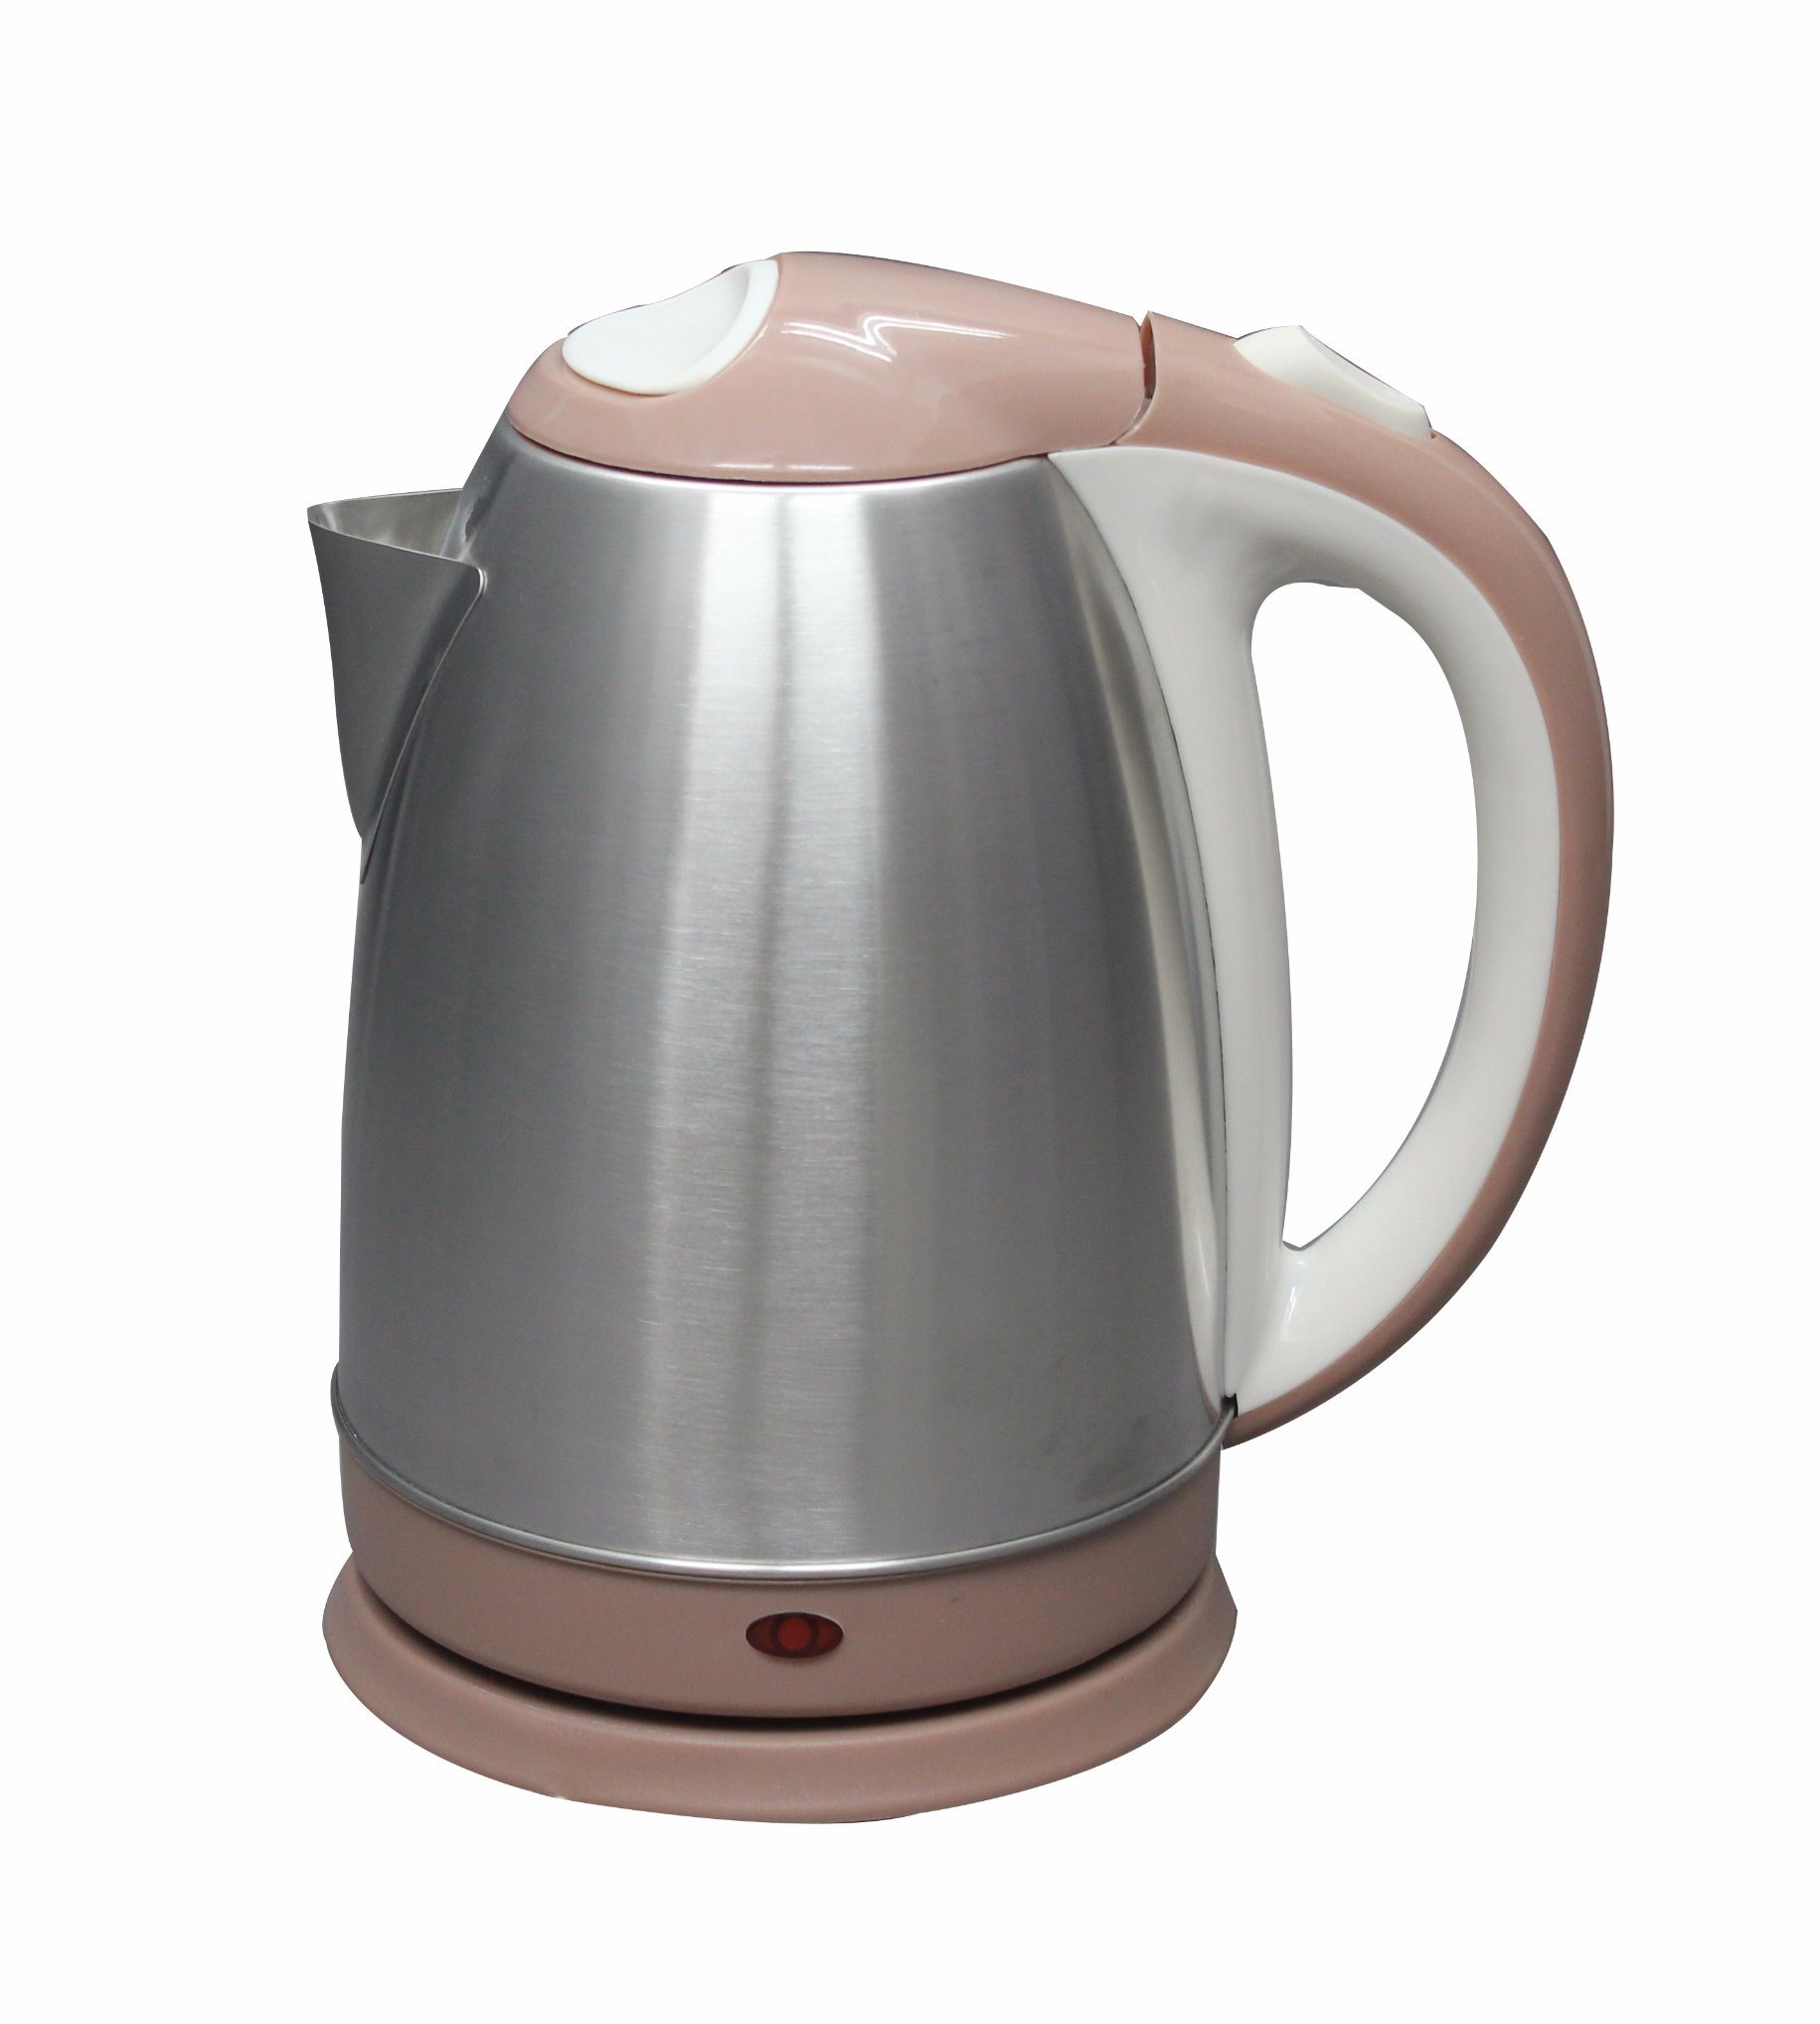 Stainless Steel Electric Kettle Home Appliance